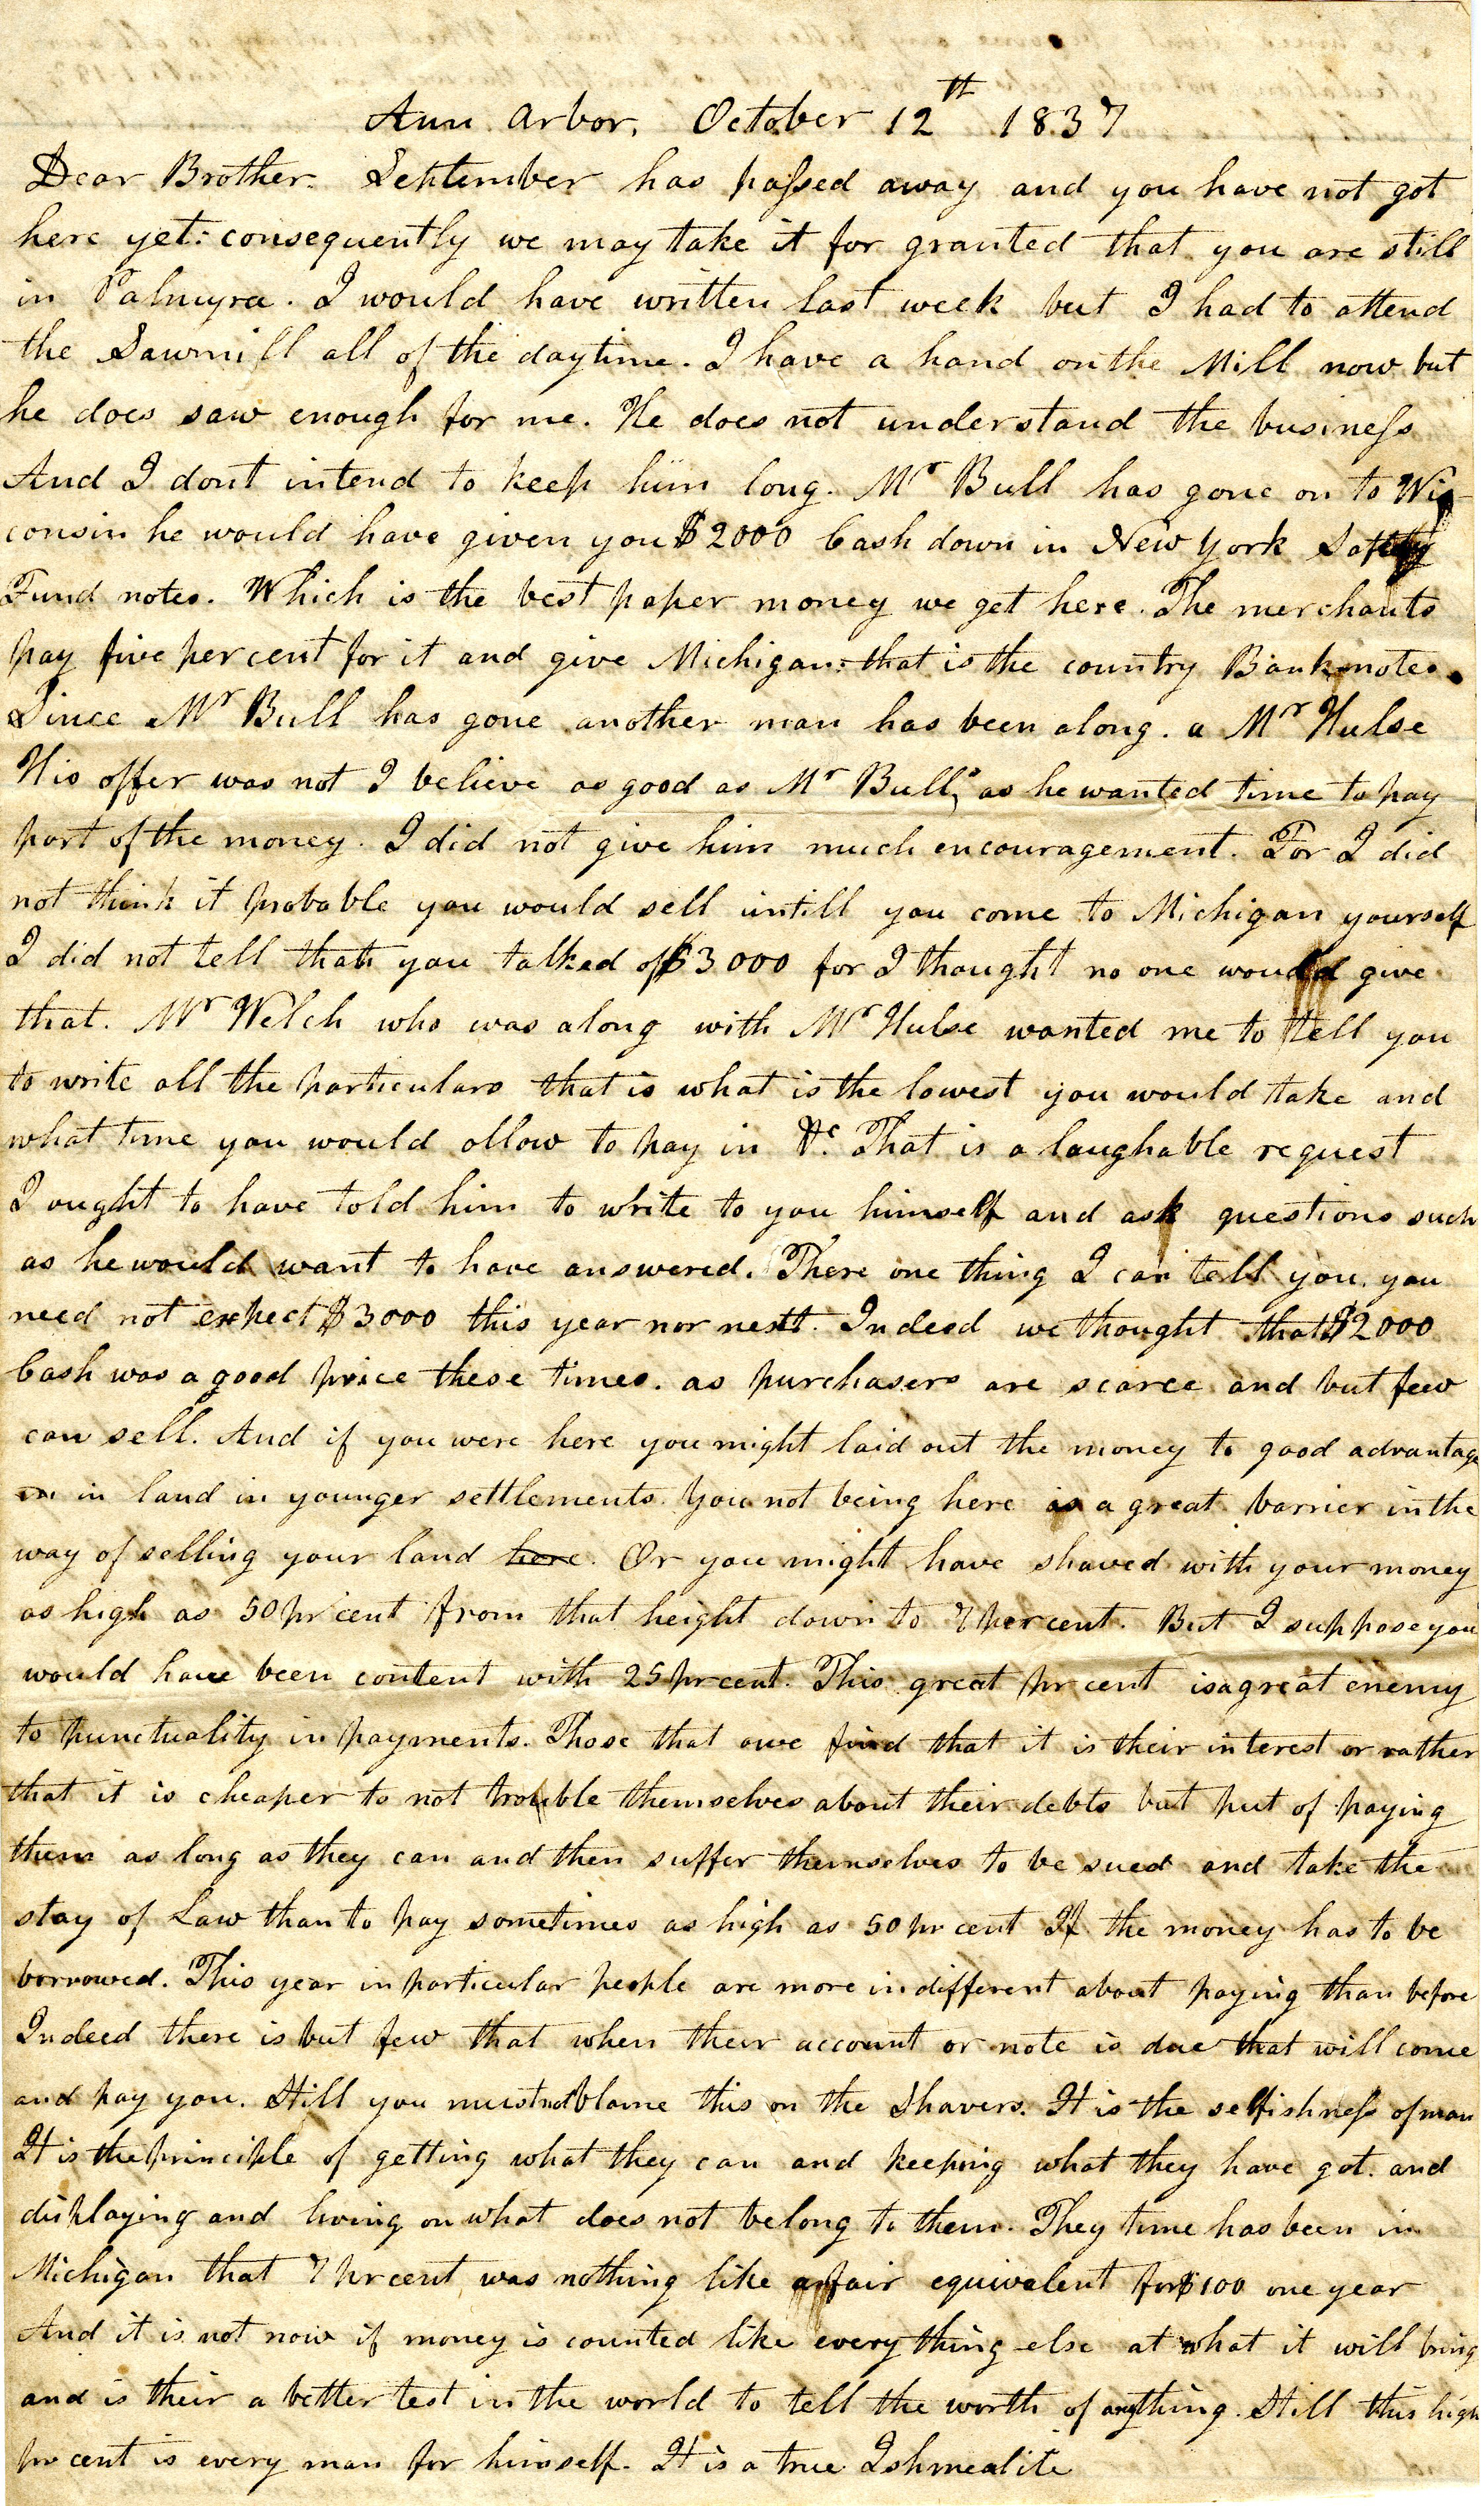 Letter From John Geddes to William Geddes, October 12, 1837 image